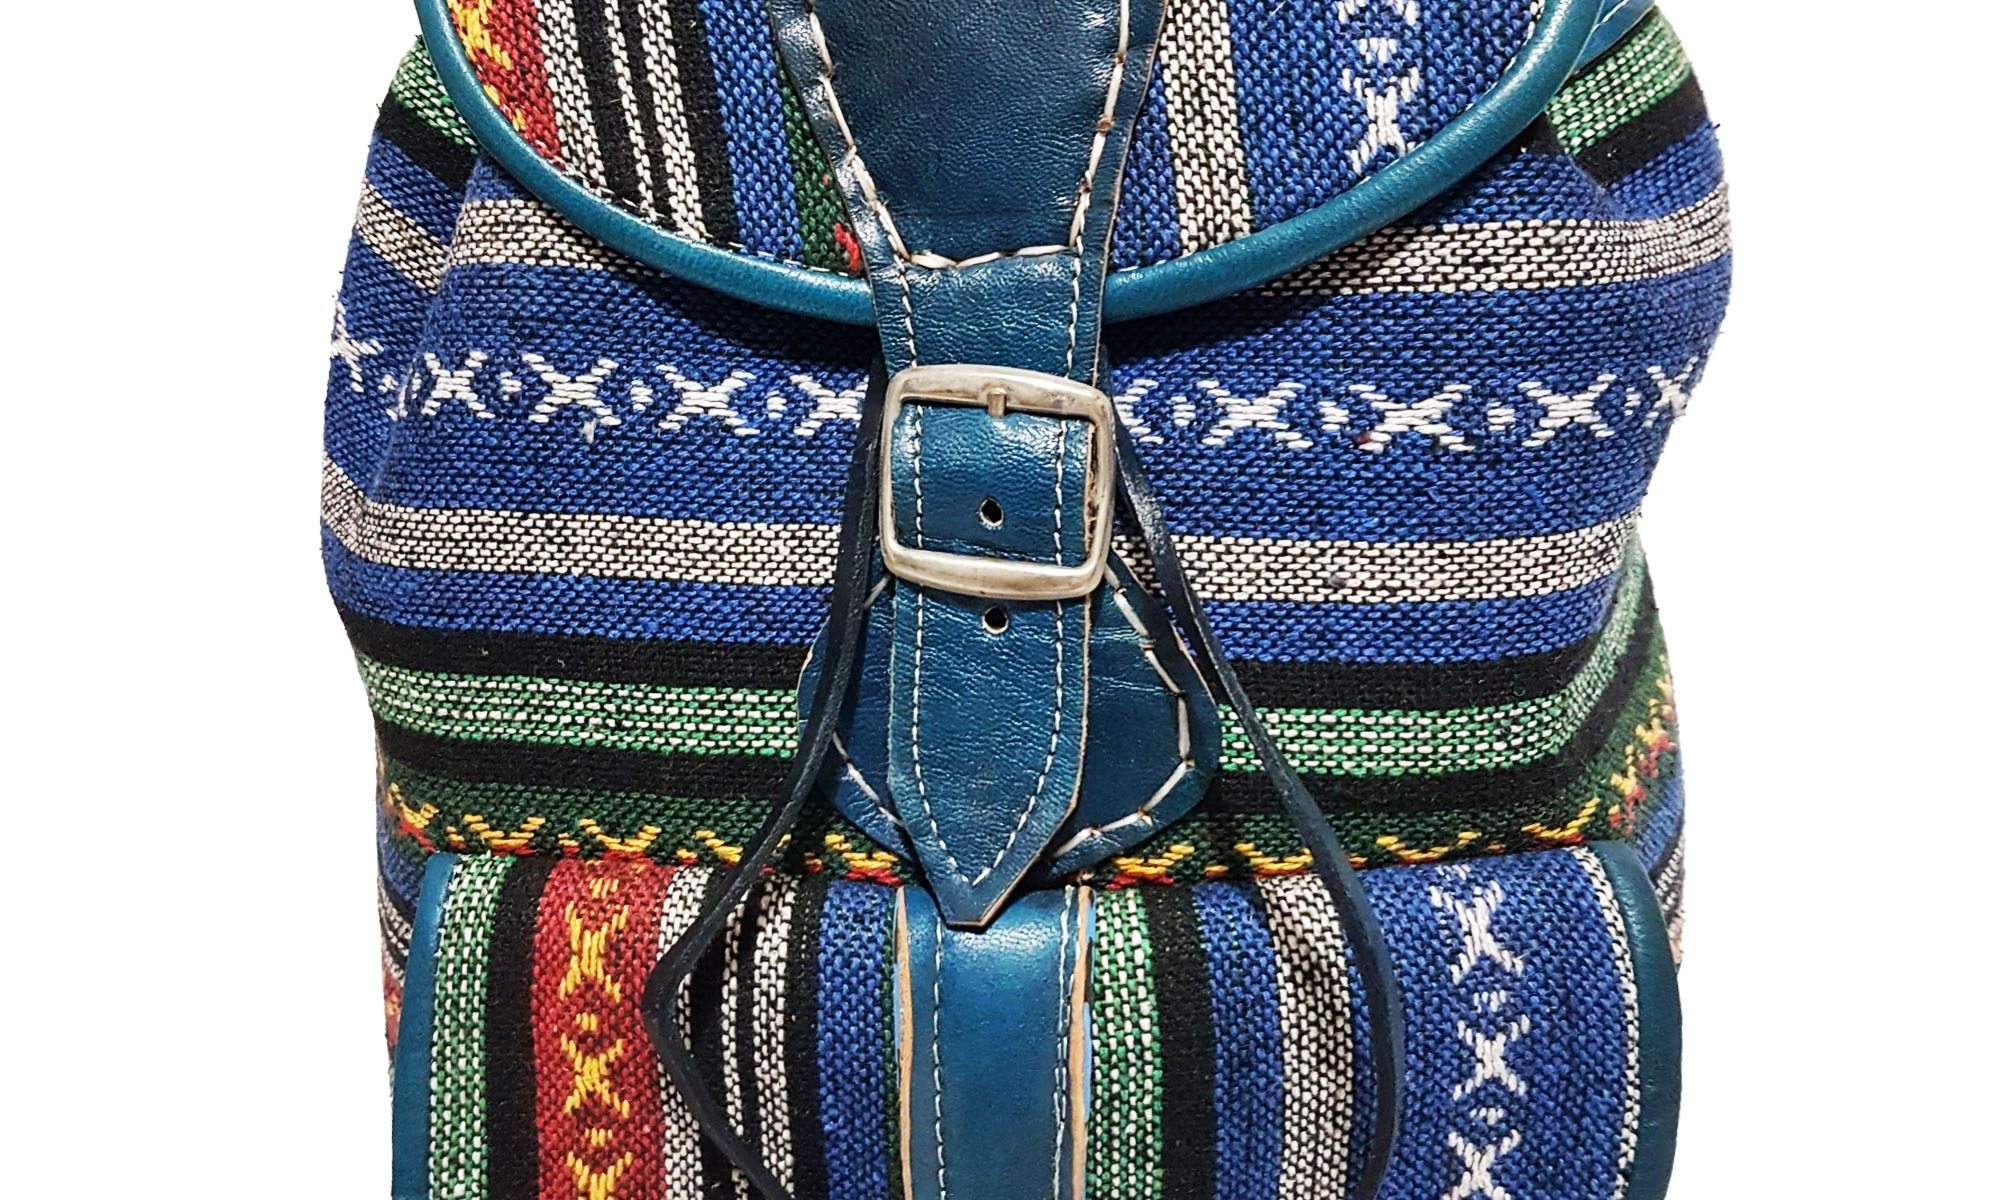 Moroccan Leather Kilim Backpack